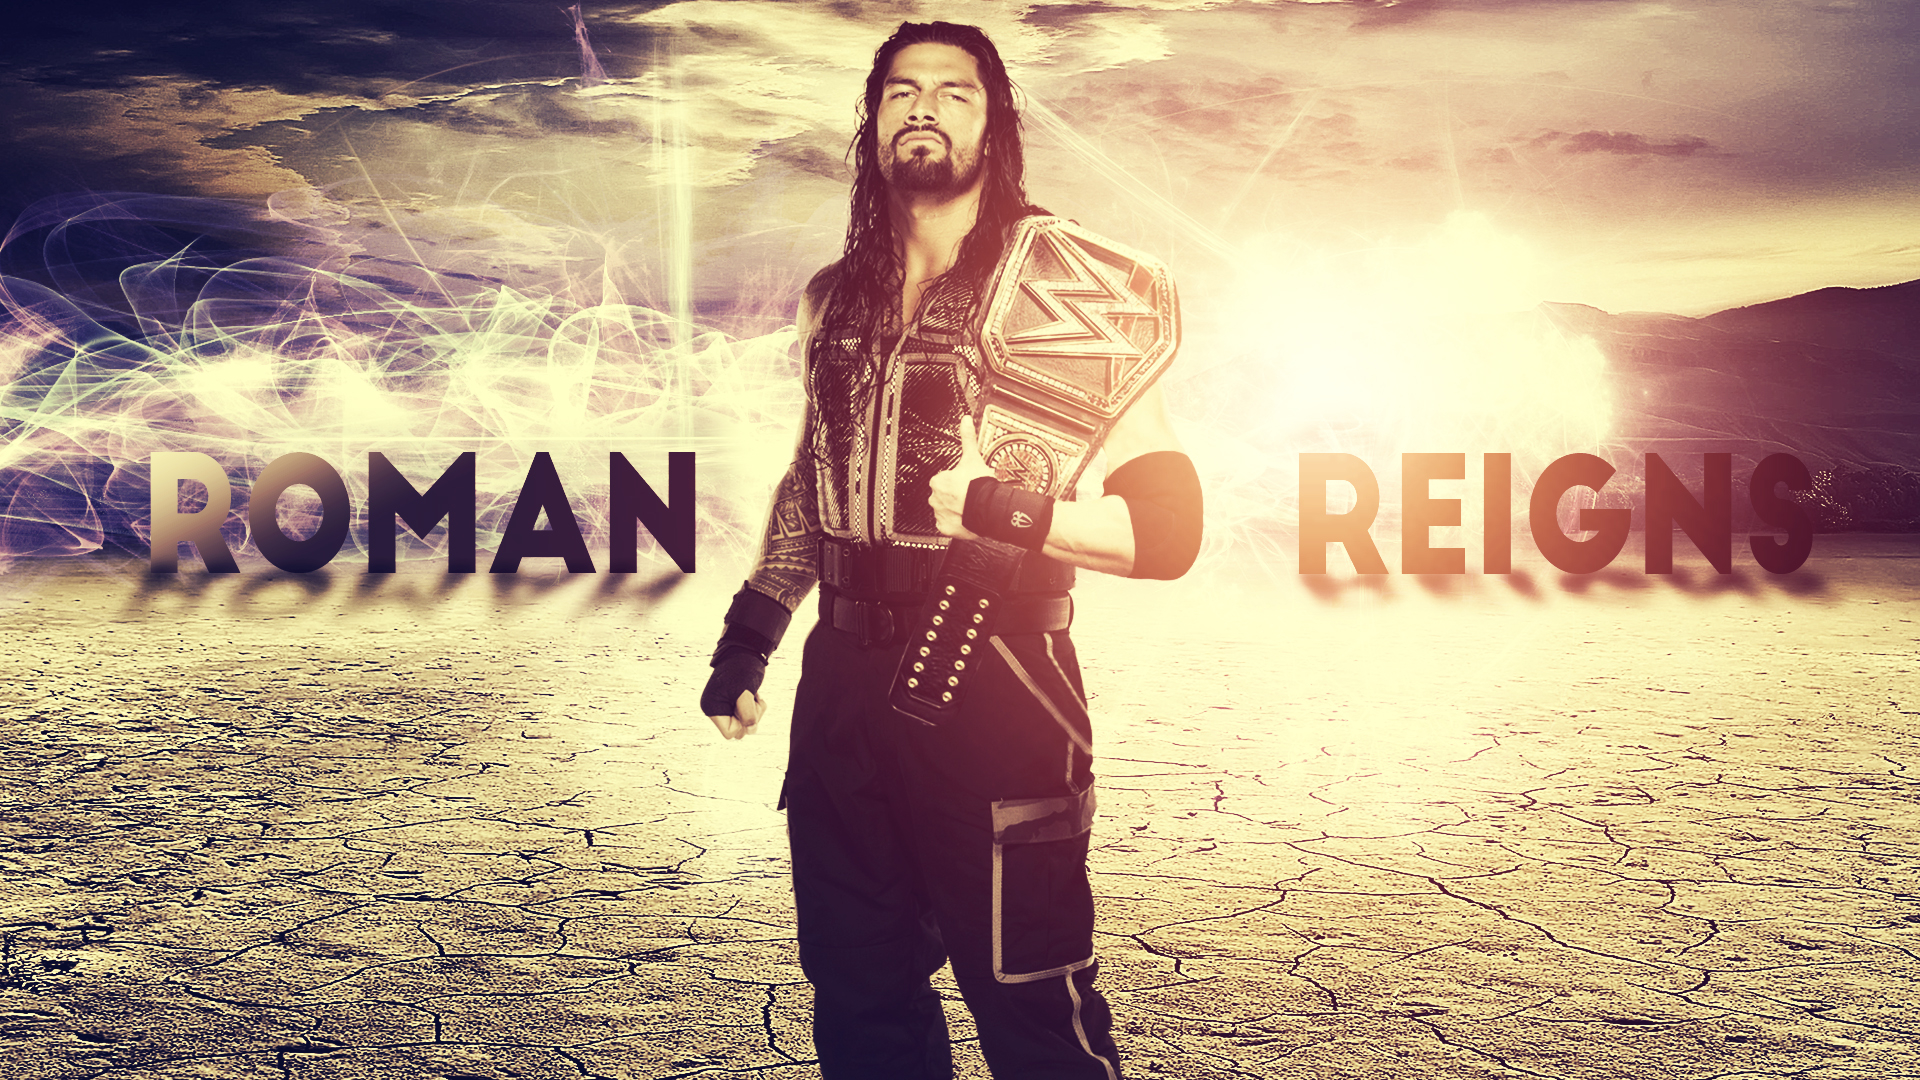 1080x2400 Roman Reigns Wwe Champion 1080x2400 Resolution Wallpaper Hd Celebrities 4k Wallpapers Images Photos And Background